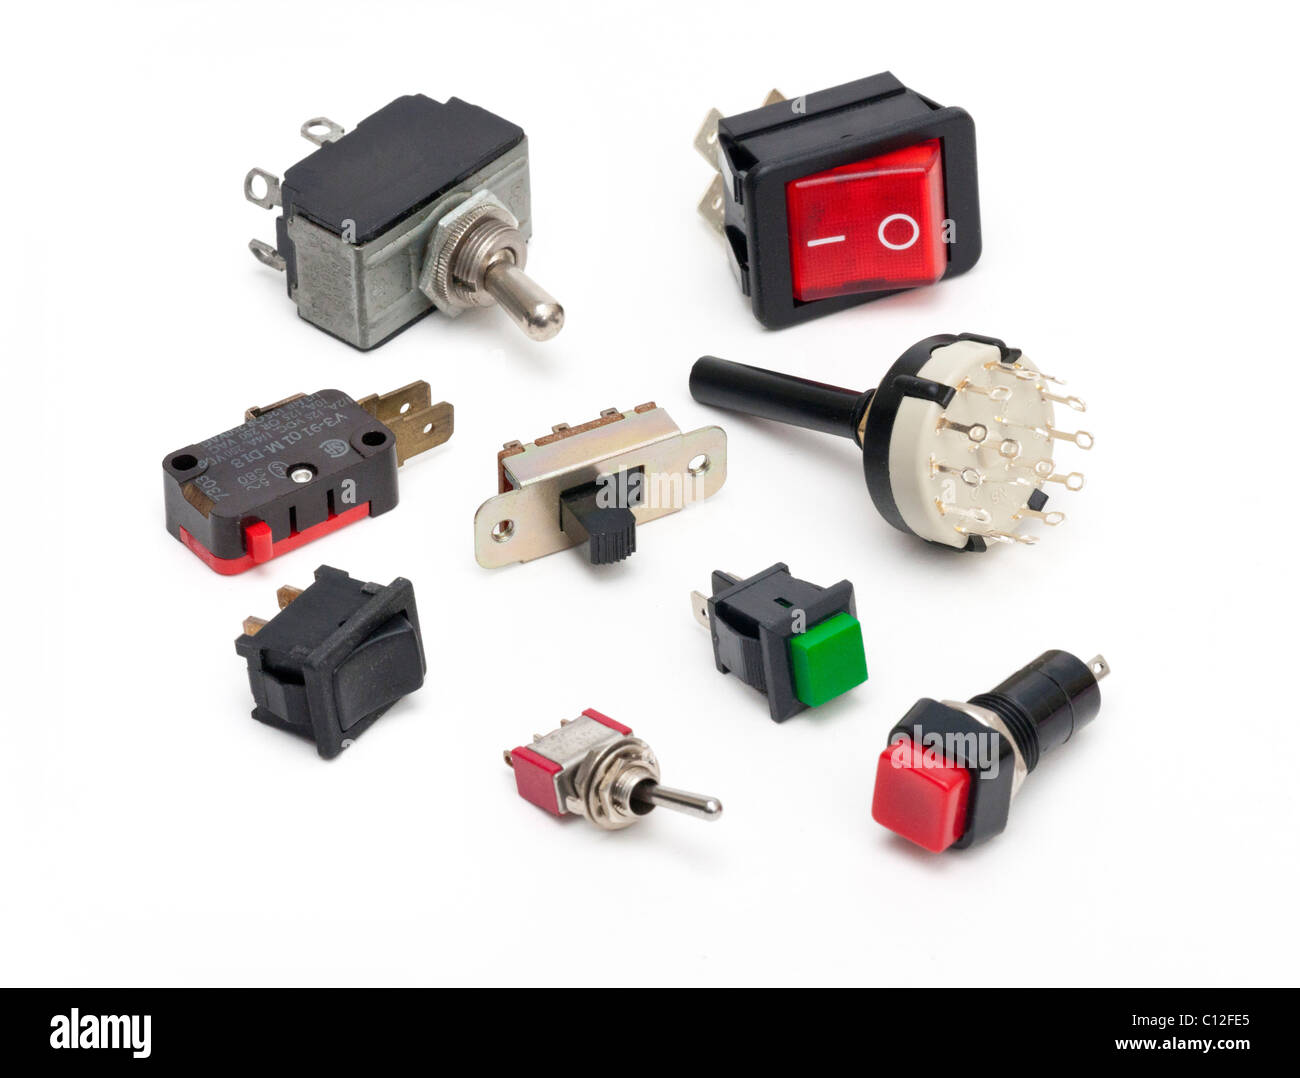 Fantastic Electrical Switch Companies Pictures Inspiration - Simple ...